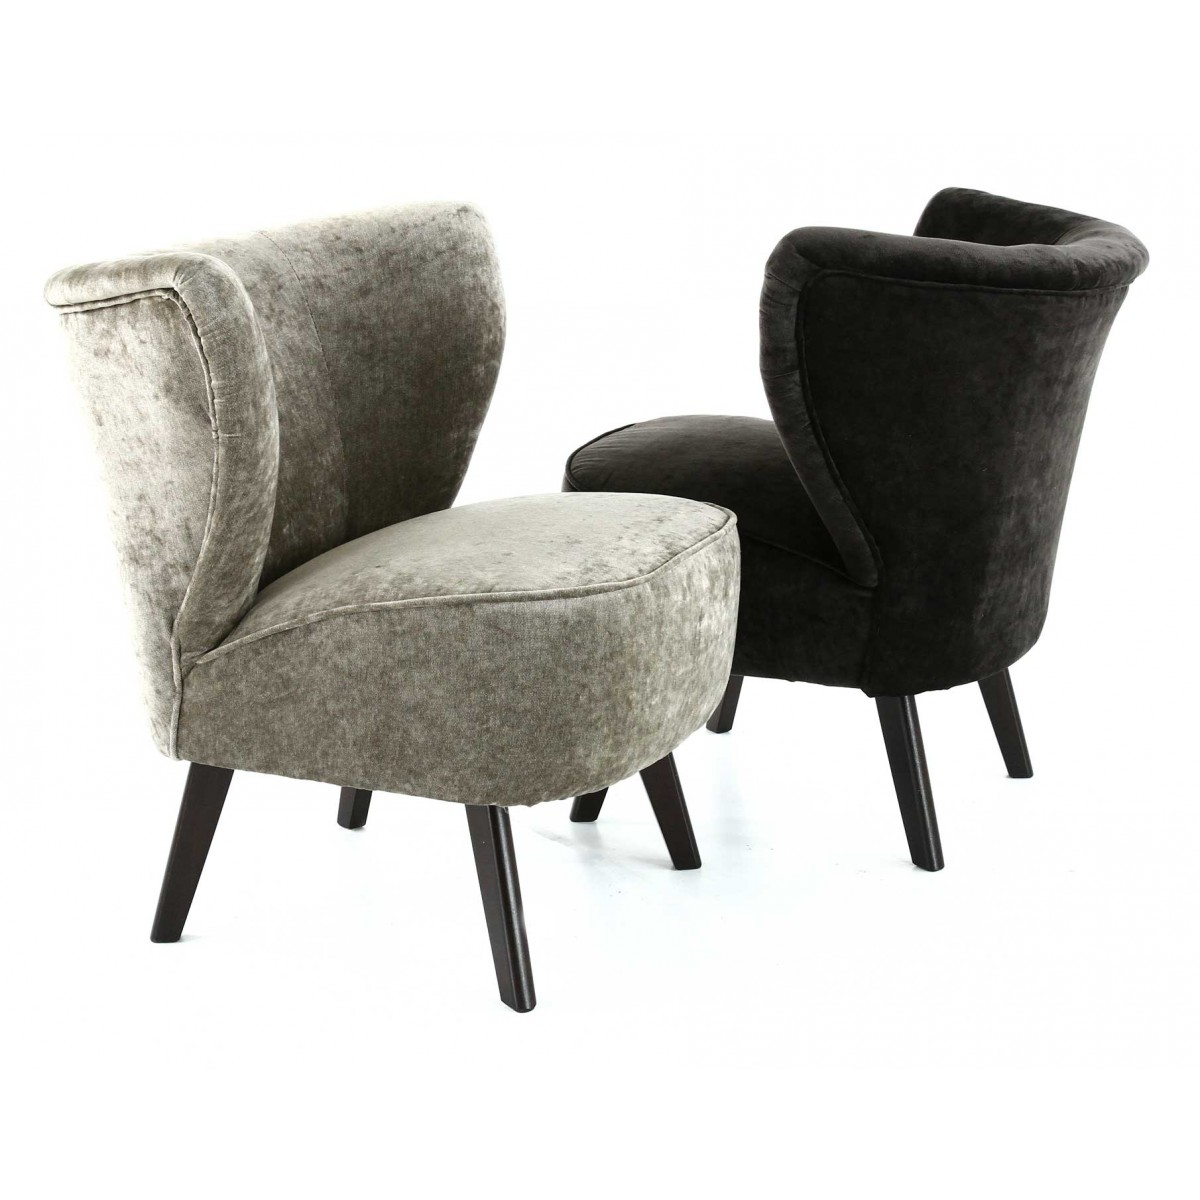 fauteuil scandinave velours gris anthracite louis gabriel. Black Bedroom Furniture Sets. Home Design Ideas